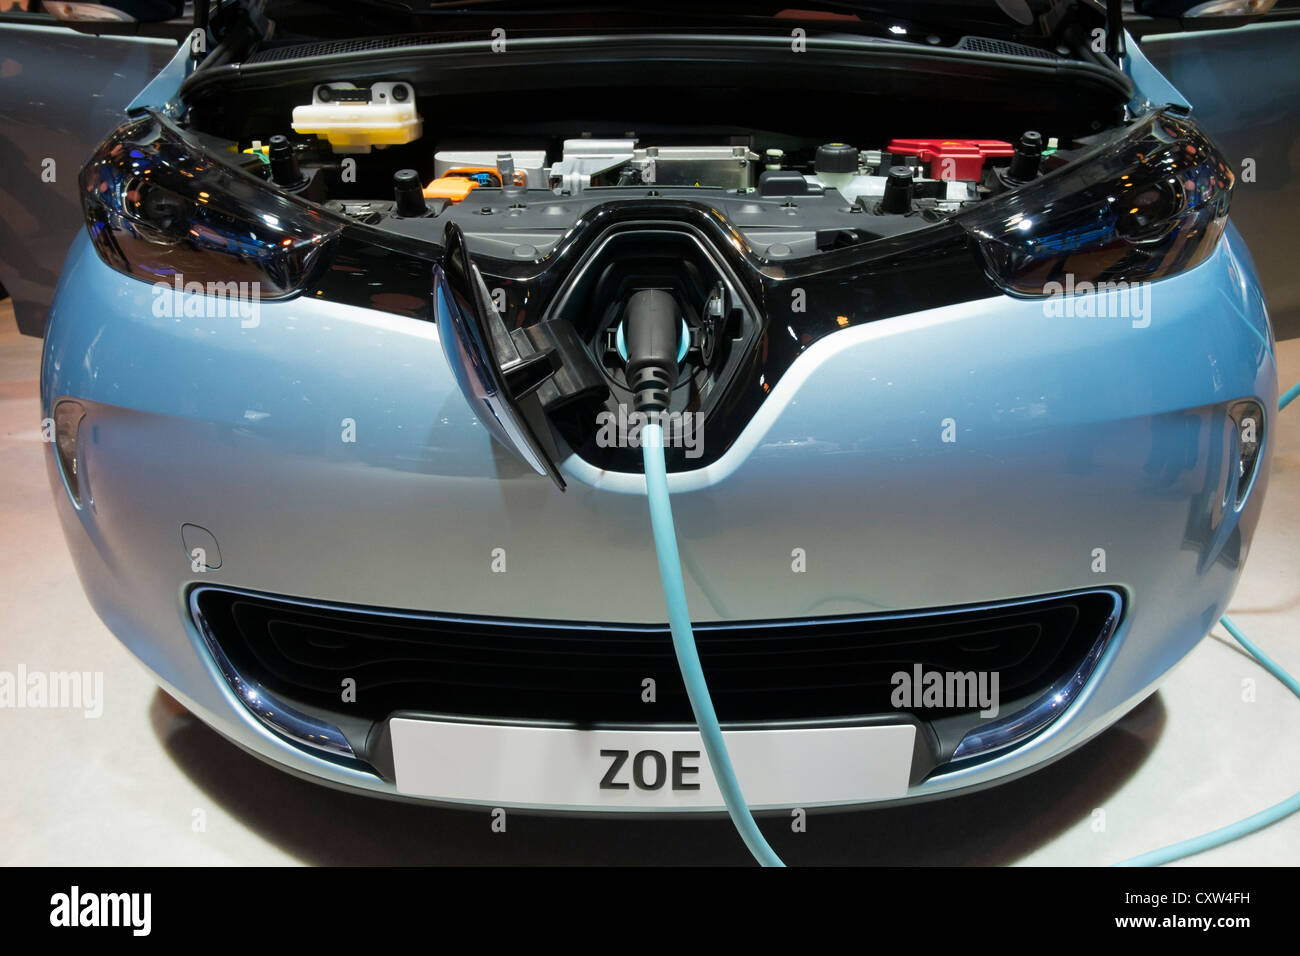 detail of renault zoe electric car with plug in charging cable stock photo 50954165 alamy. Black Bedroom Furniture Sets. Home Design Ideas